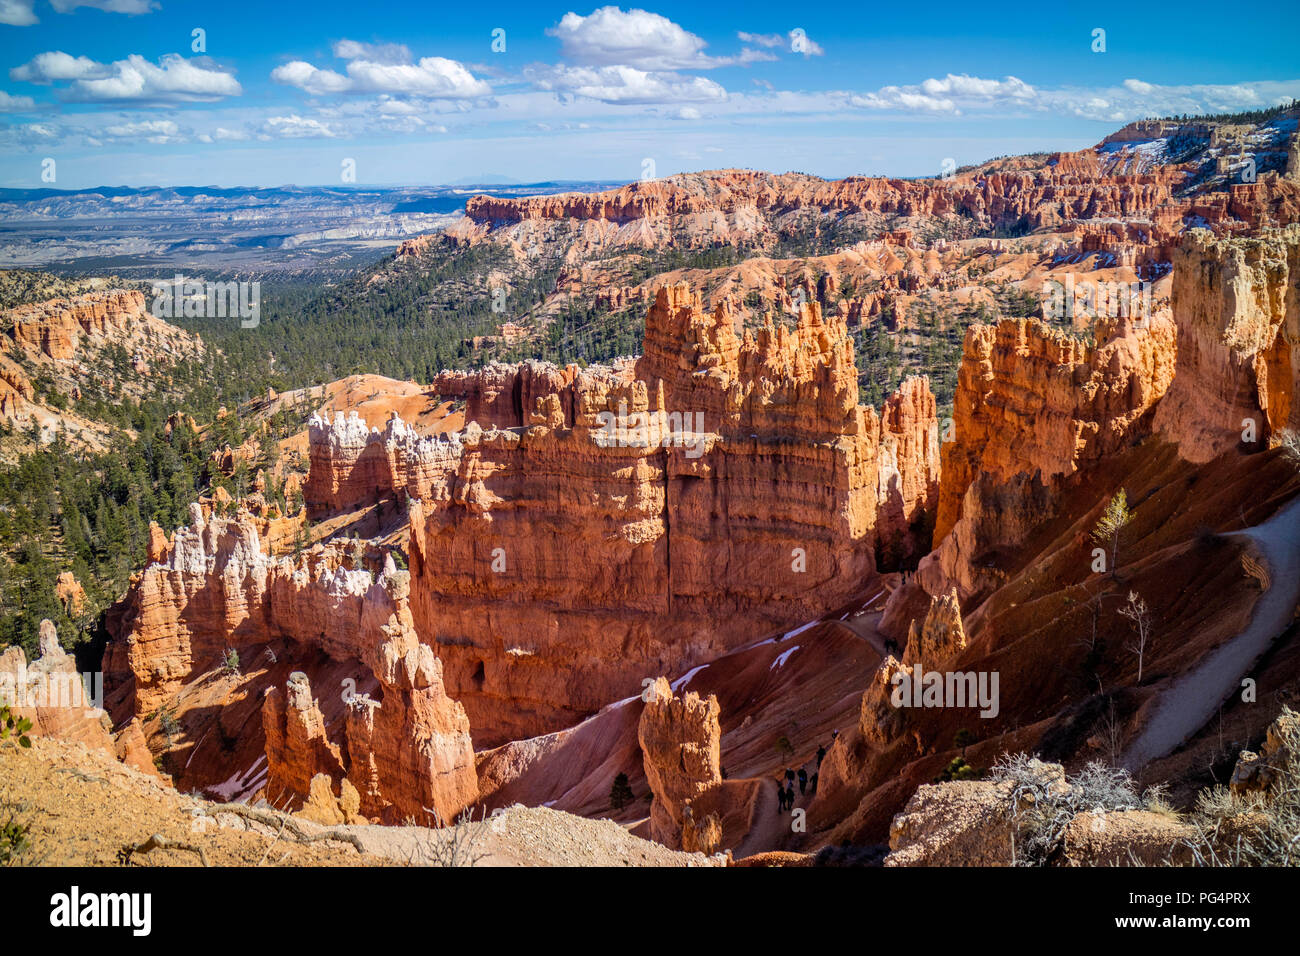 Natural rock formation of the famous site of Bryce Canyon National Park Stock Photo